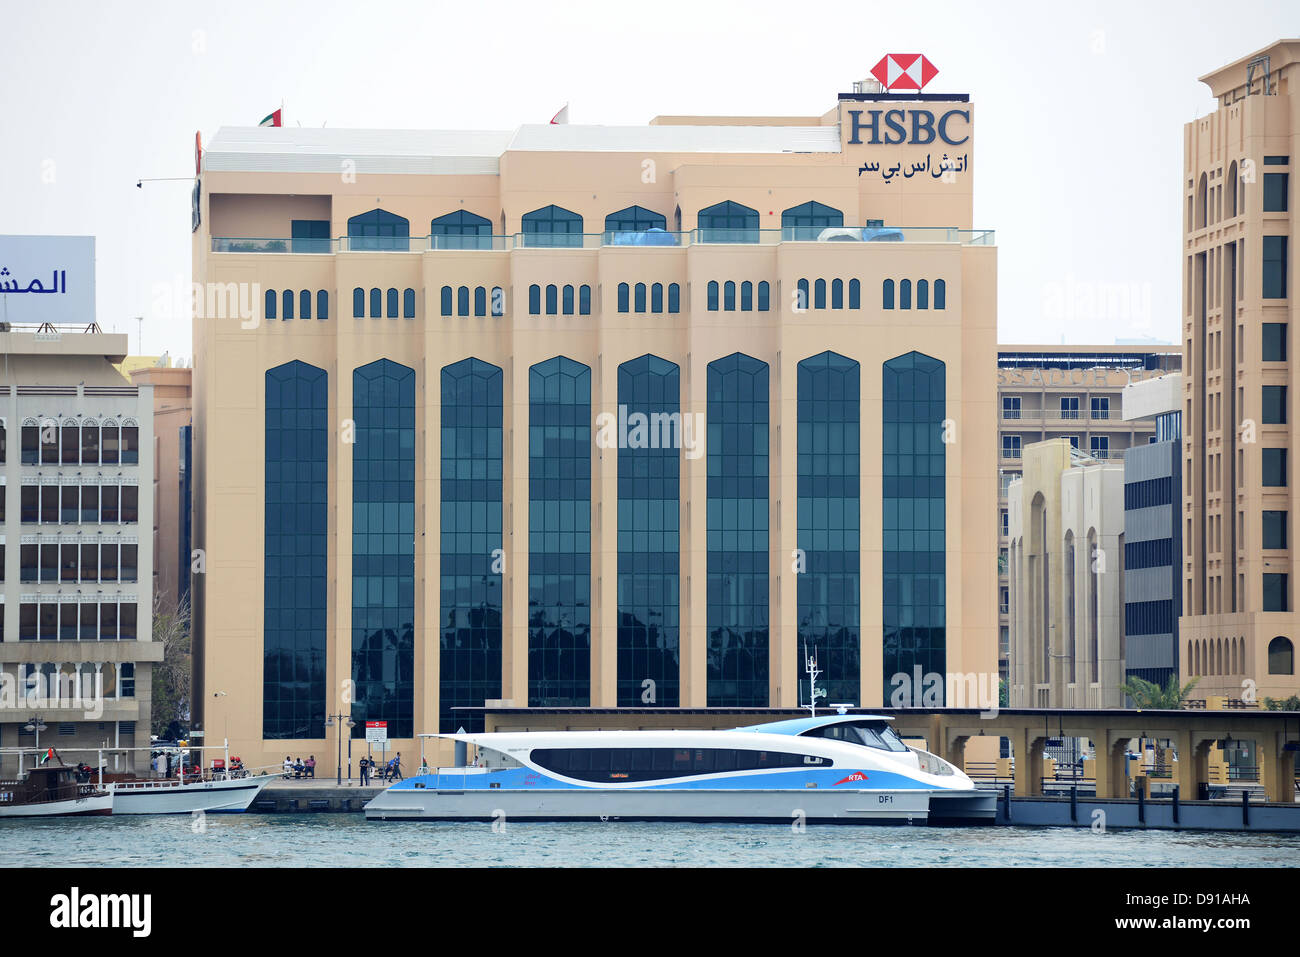 hsbc branch location in dubai